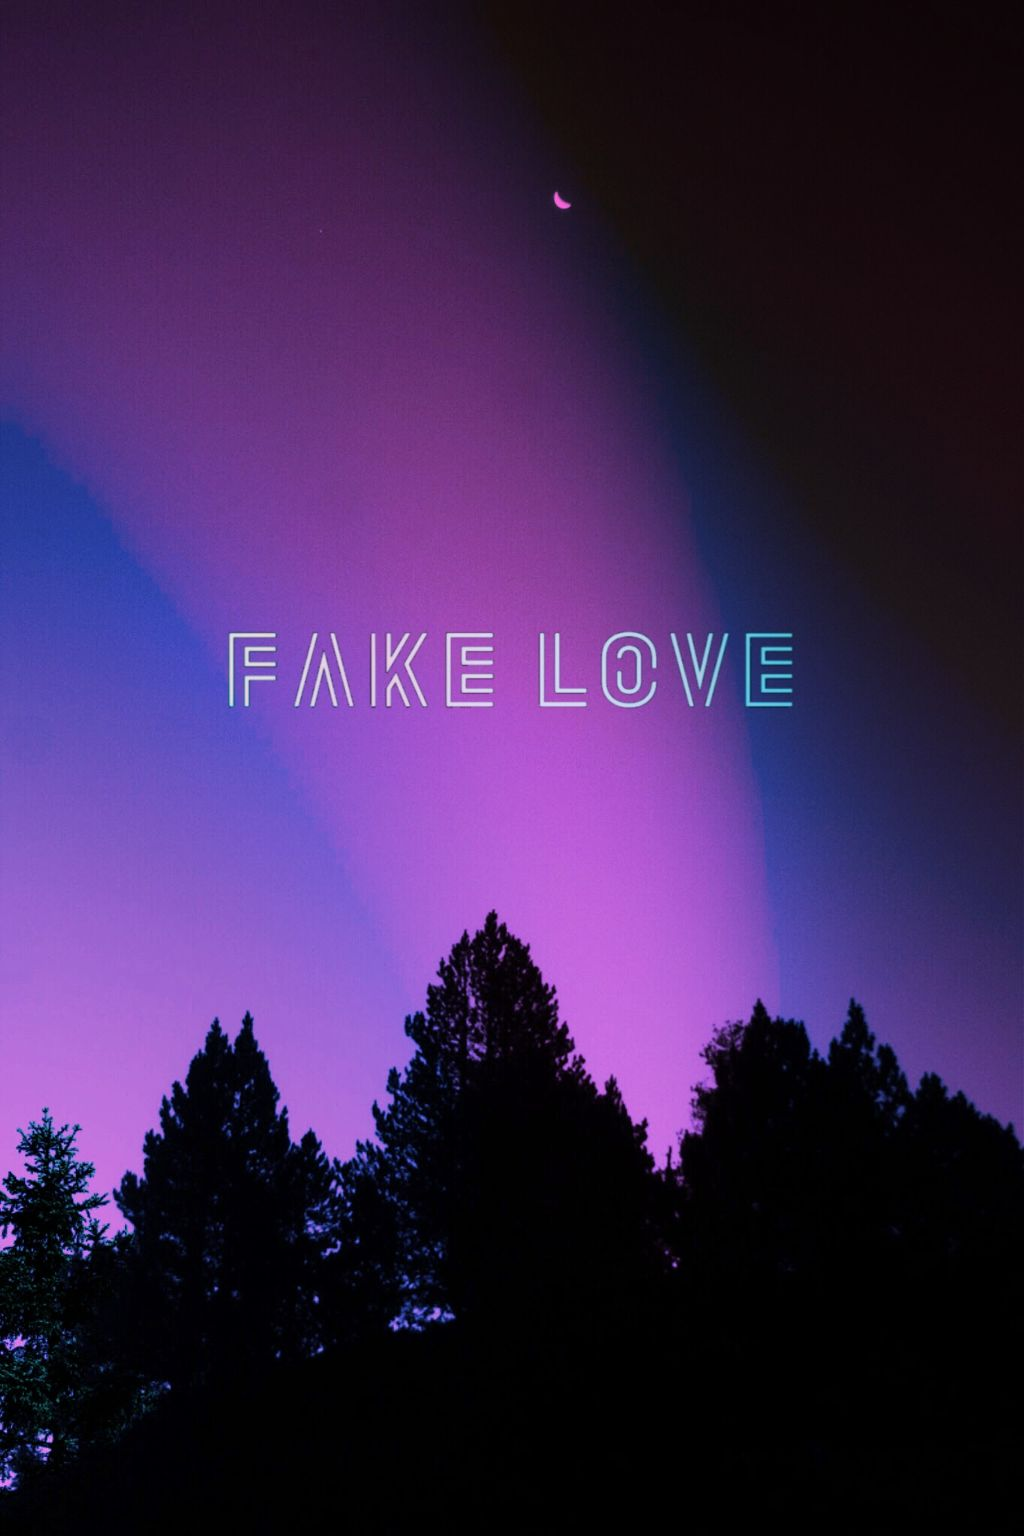 bts fake love wallpapers